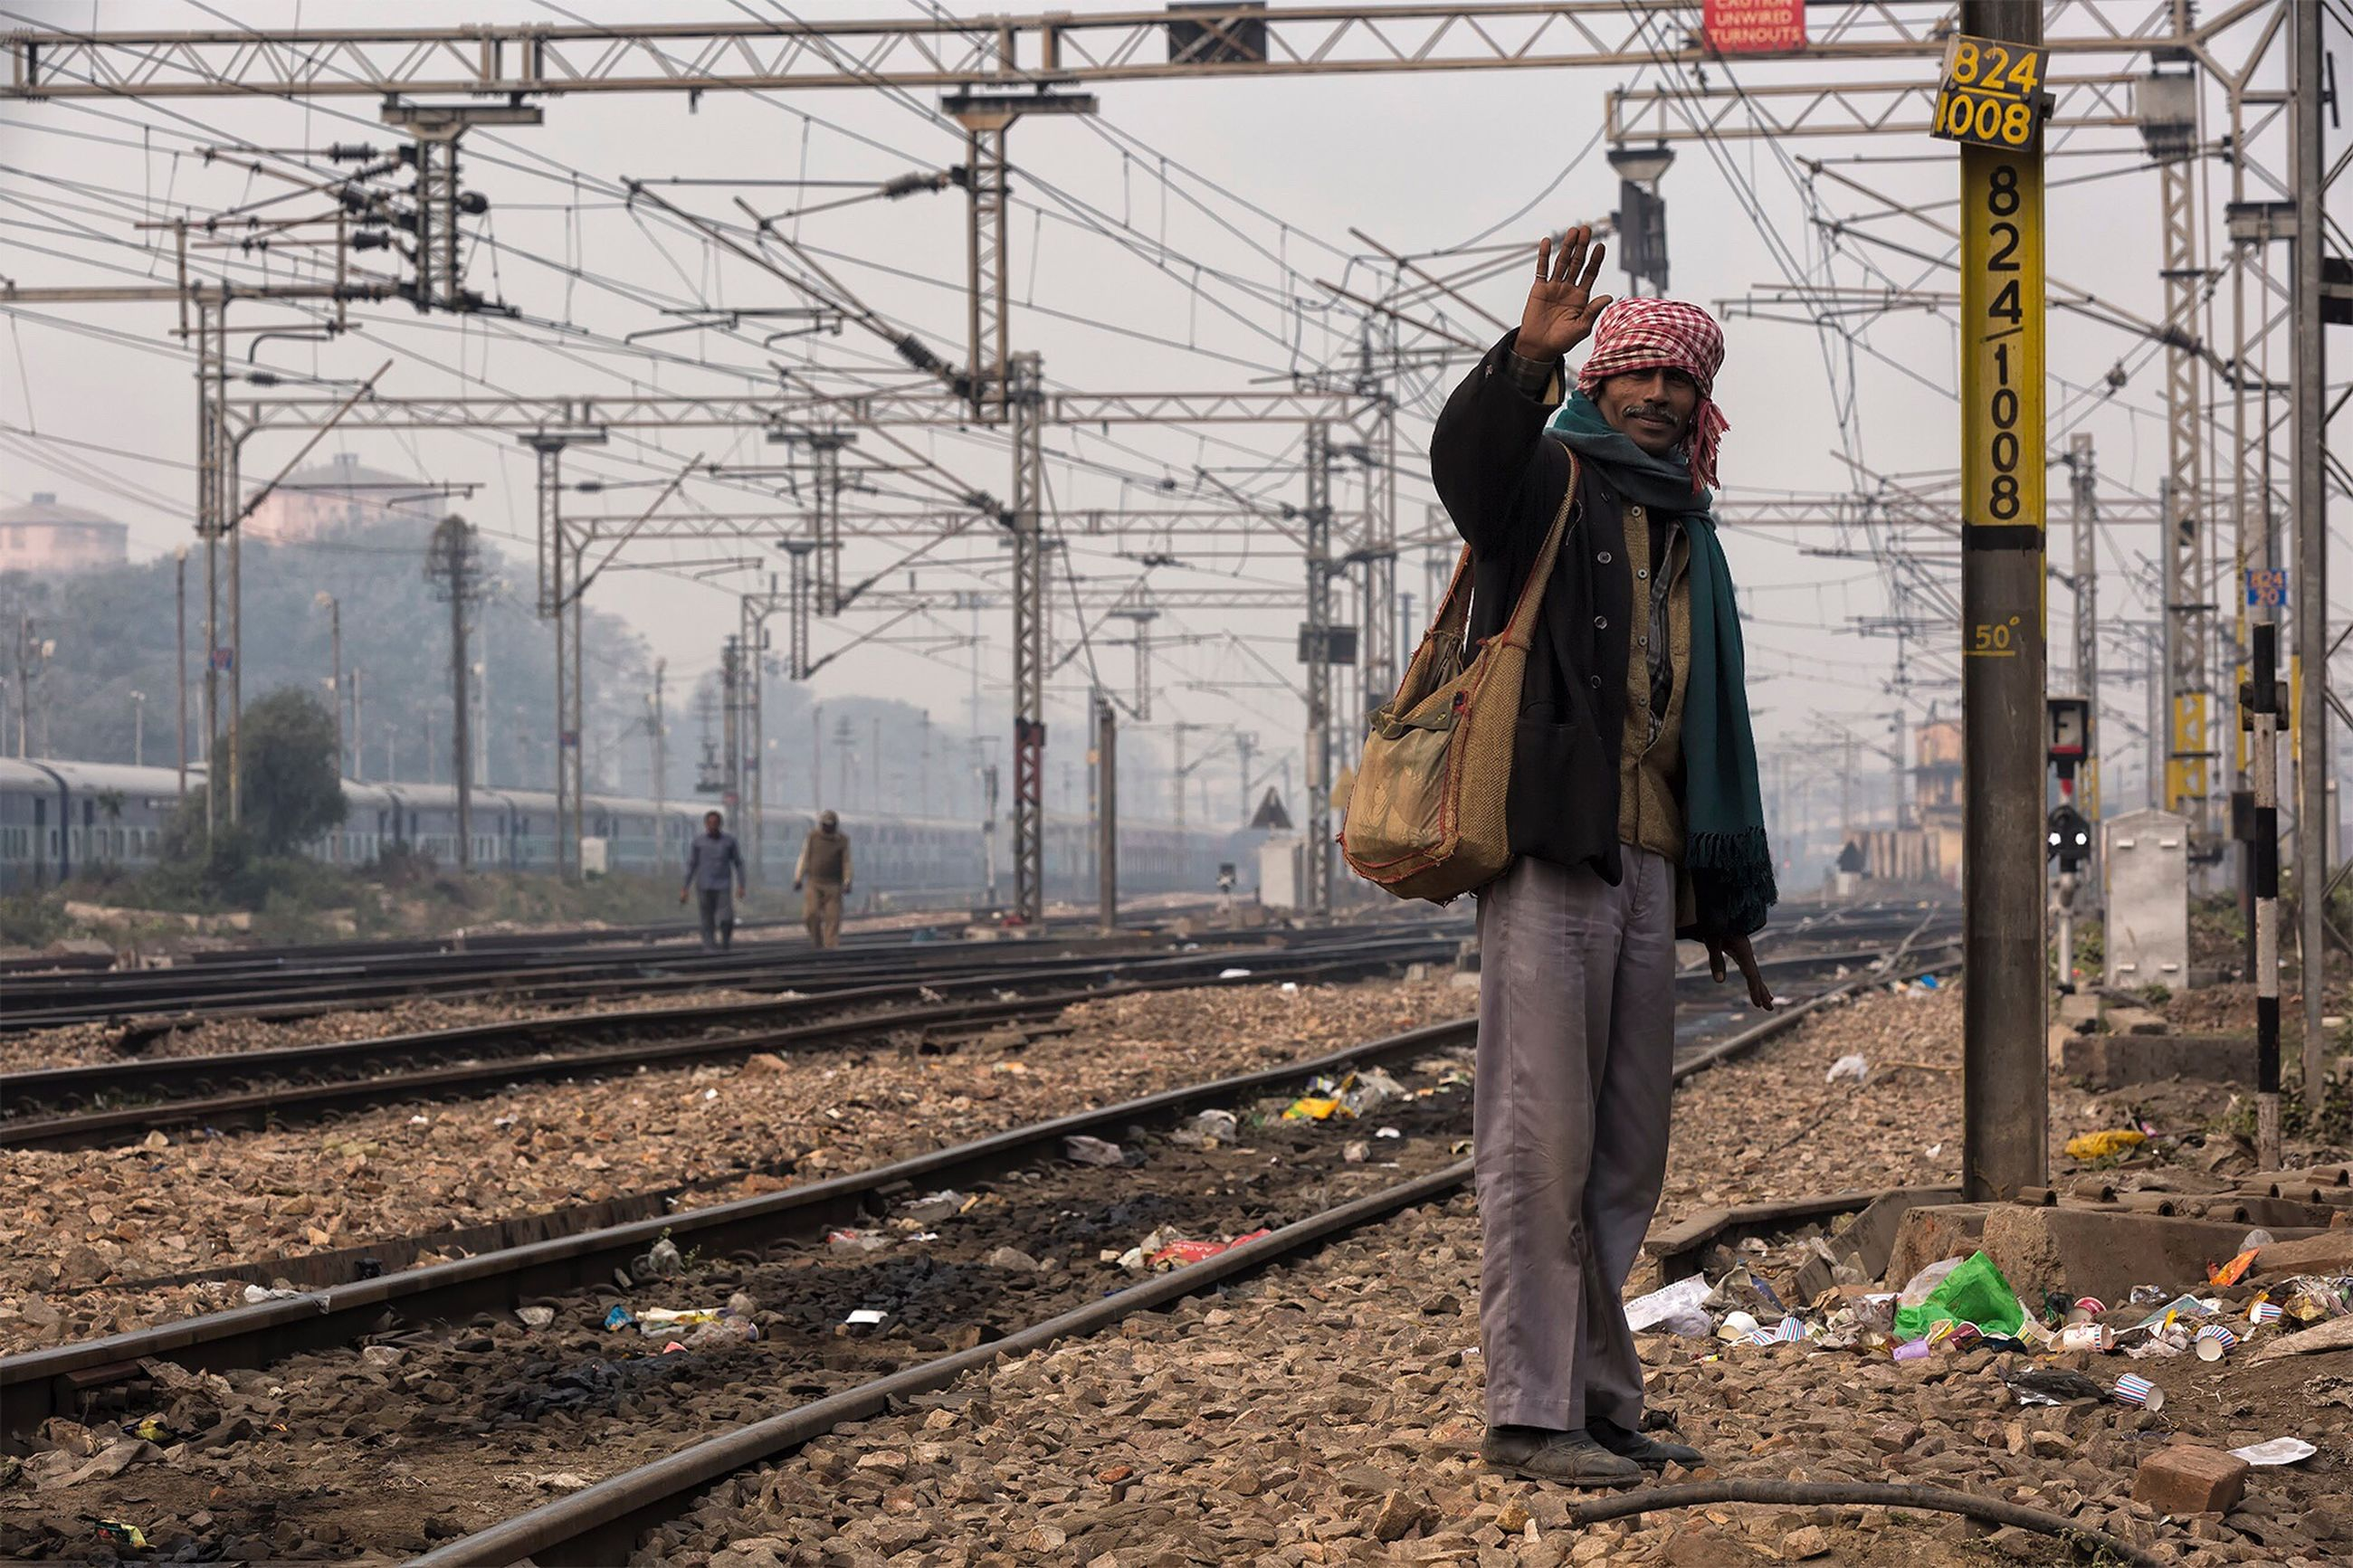 real people, railroad track, one person, full length, standing, lifestyles, outdoors, day, winter, young adult, sky, people